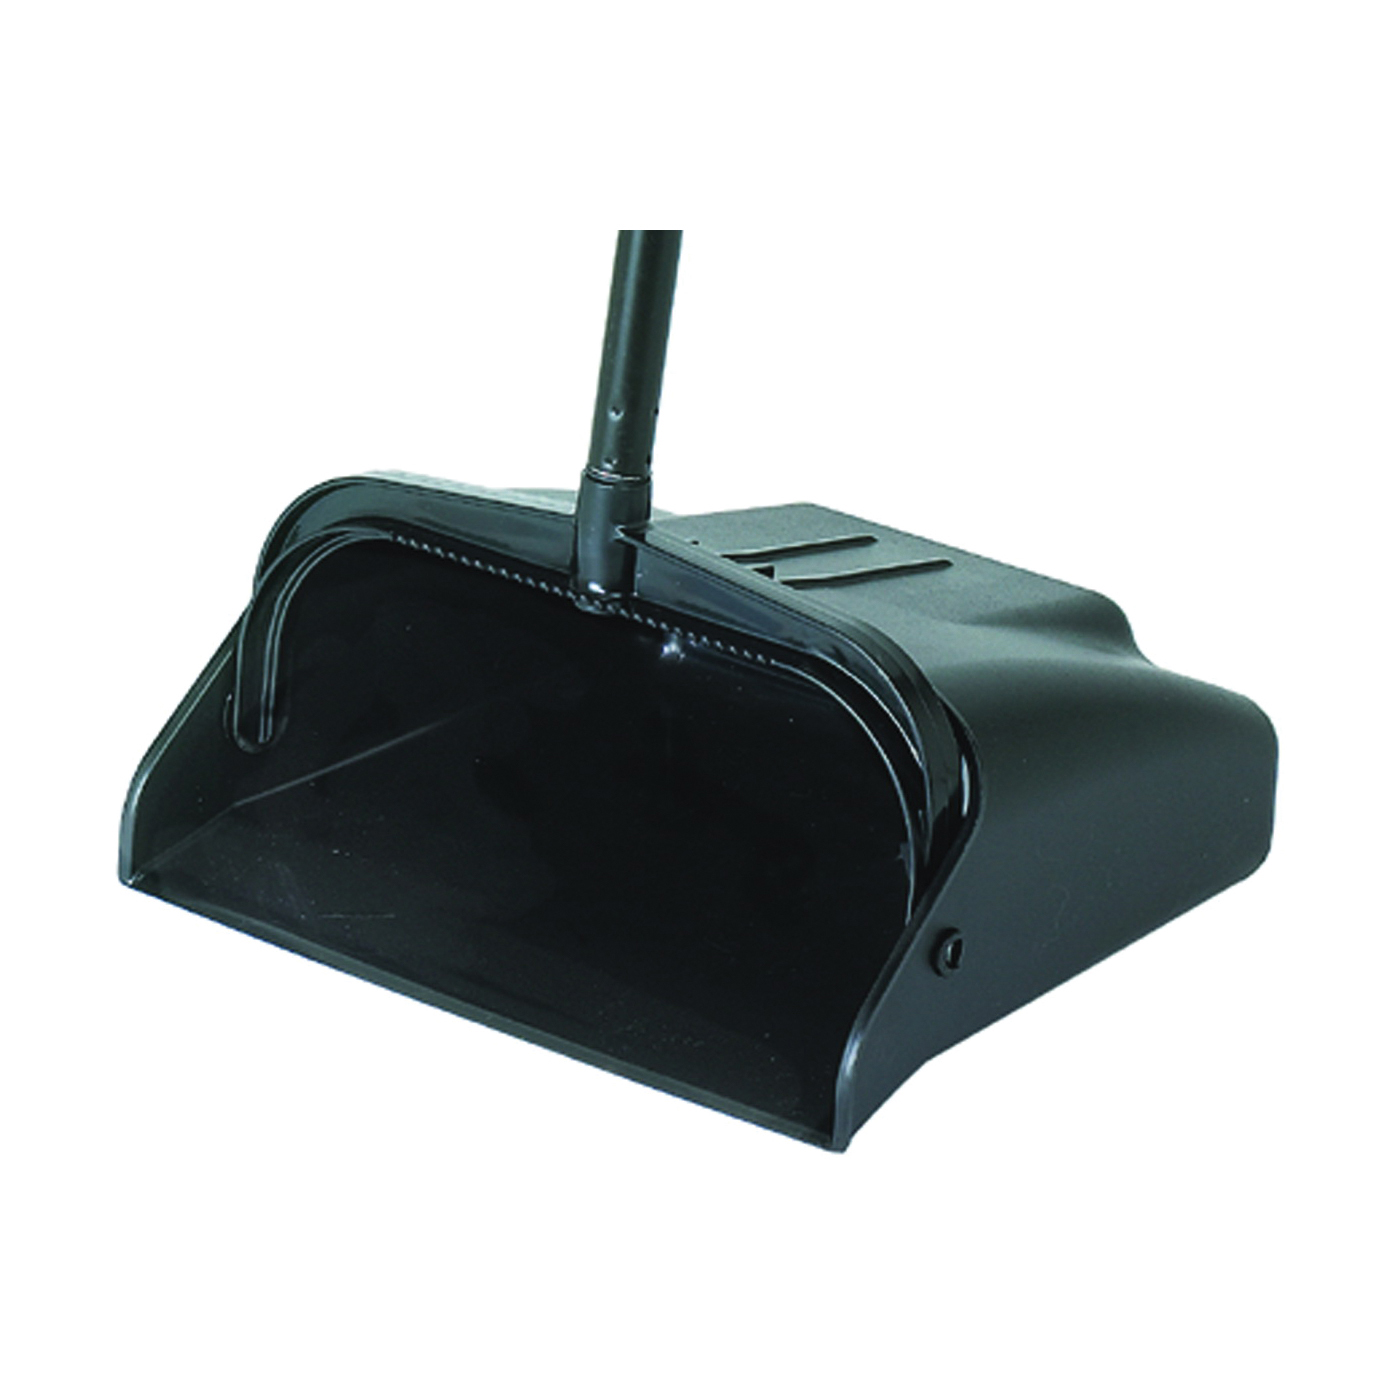 Picture of CONTINENTAL COMMERCIAL 912BK Lobby Dustpan, 36-3/4 in L, 10-3/4 in W, Plastic, Black